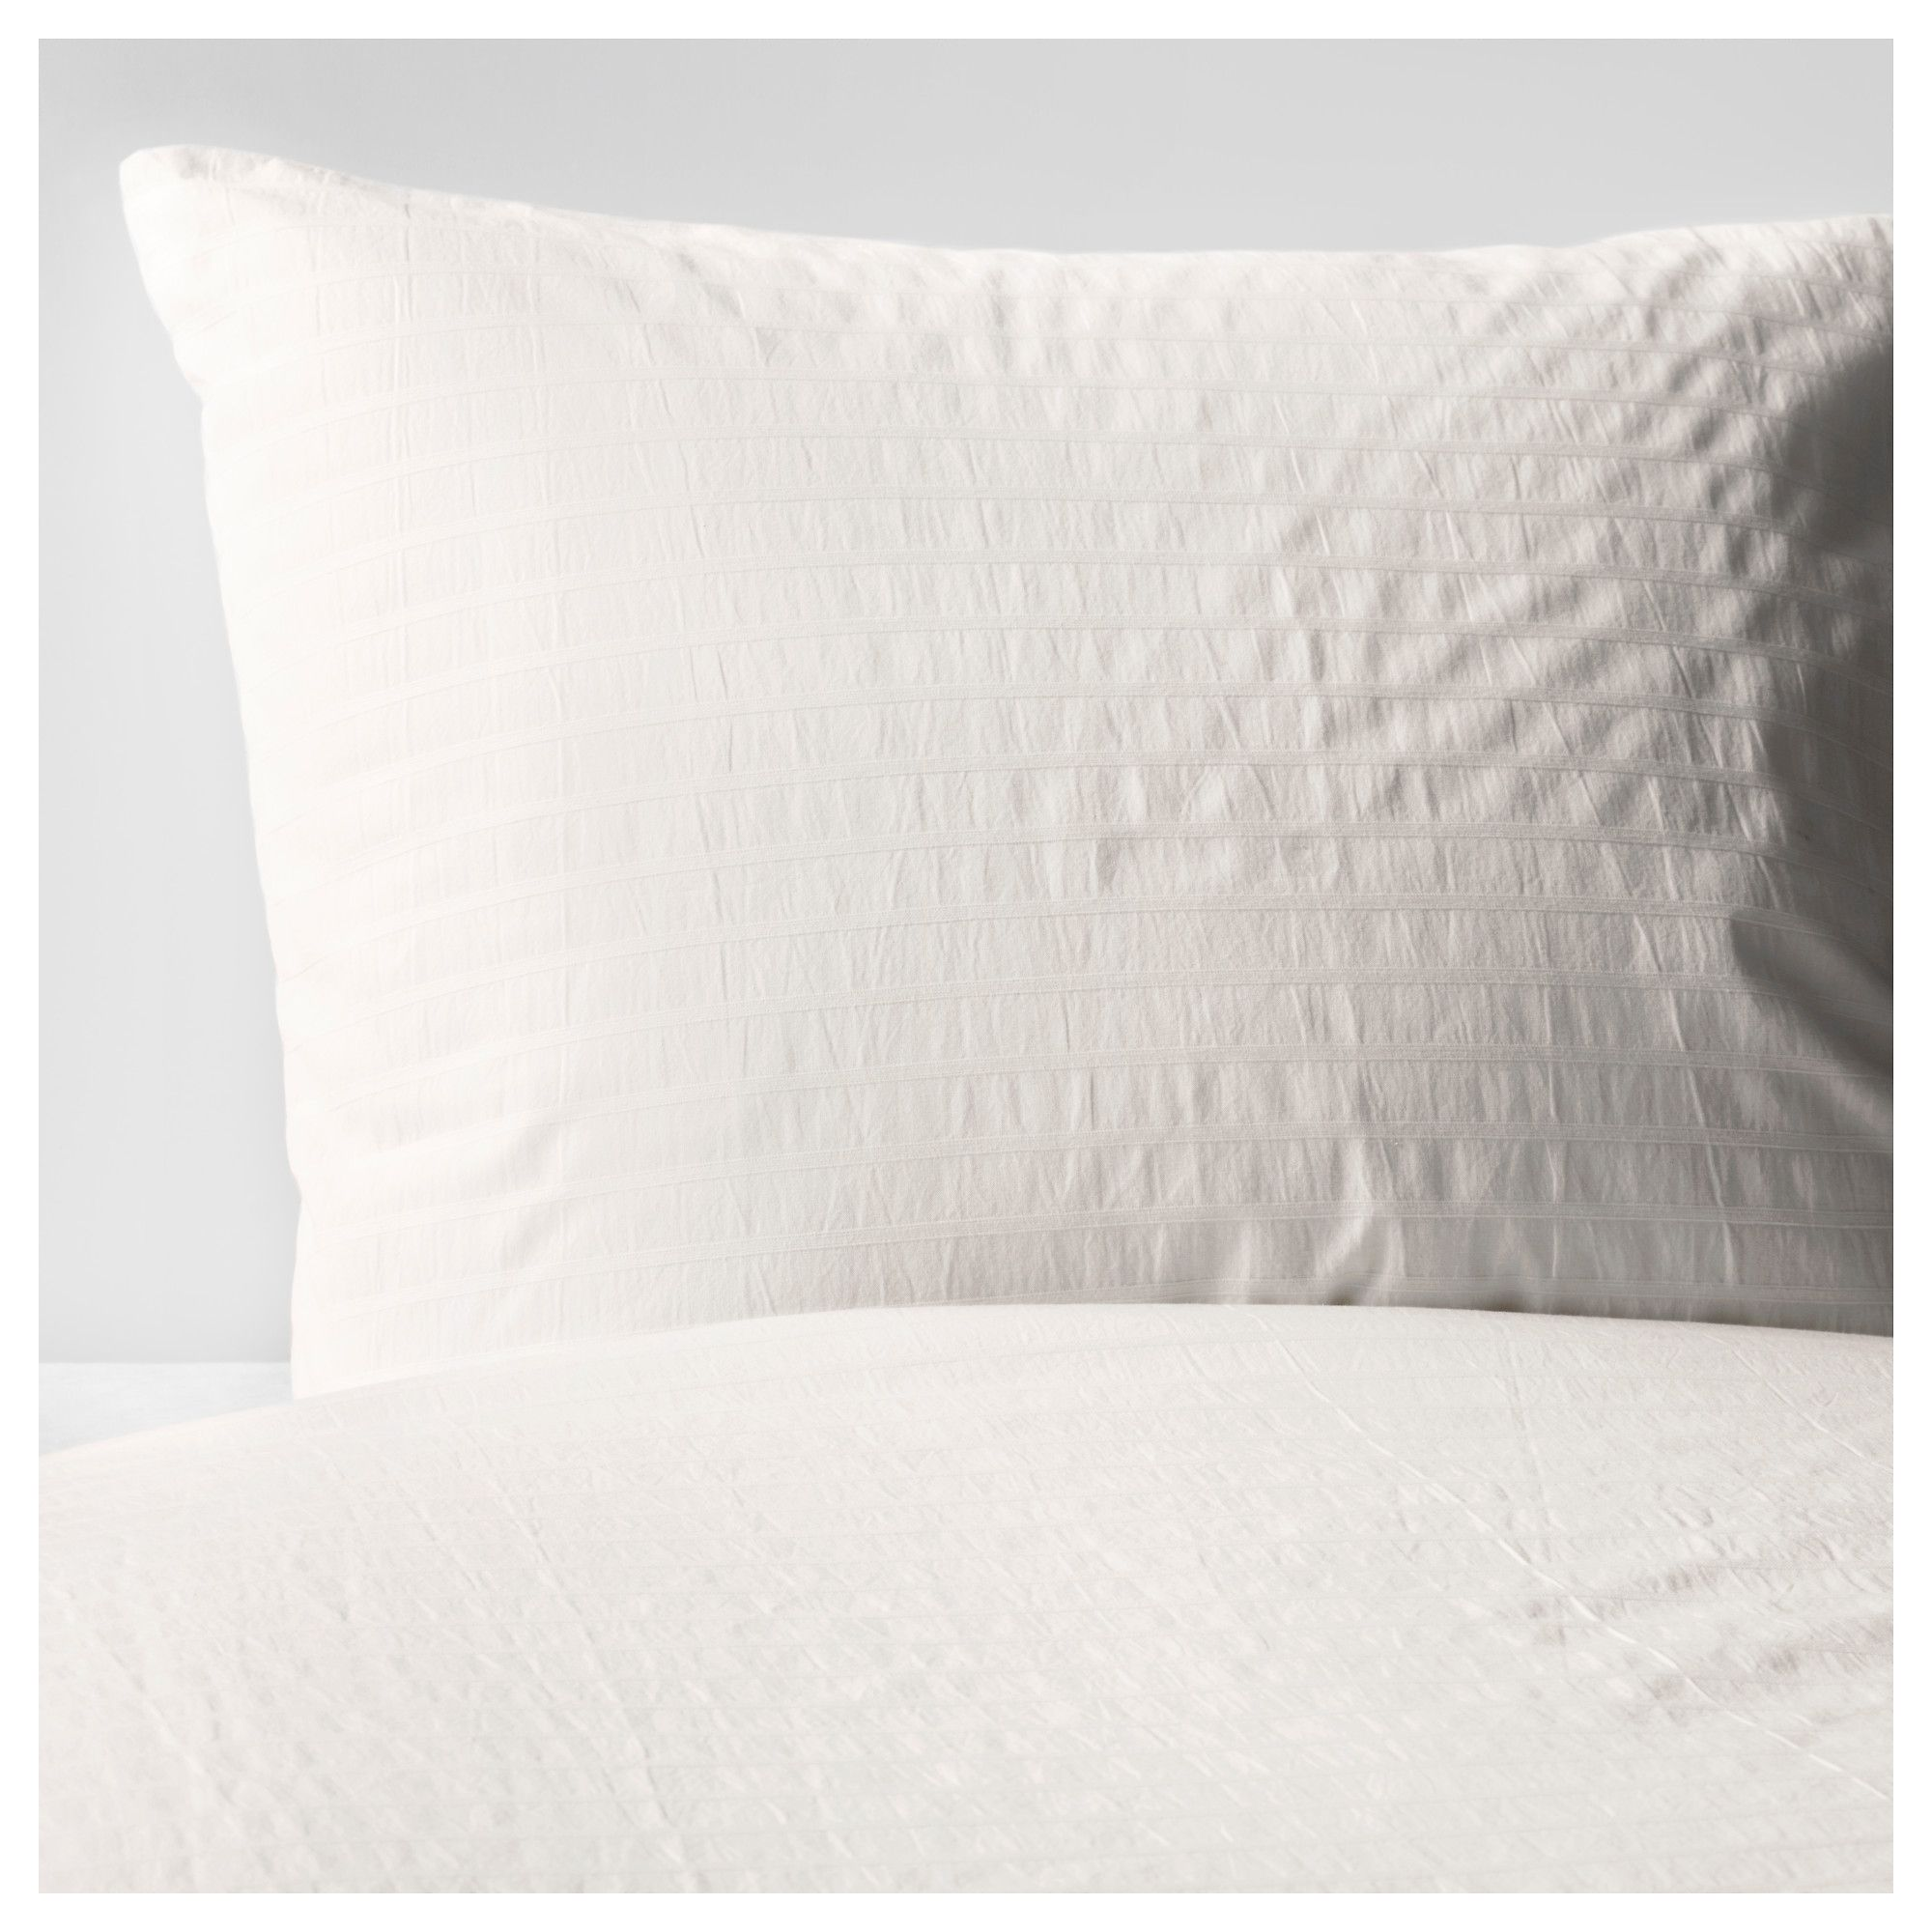 Ofelia Vass Duvet Cover And Pillowcases White Guest Room Office